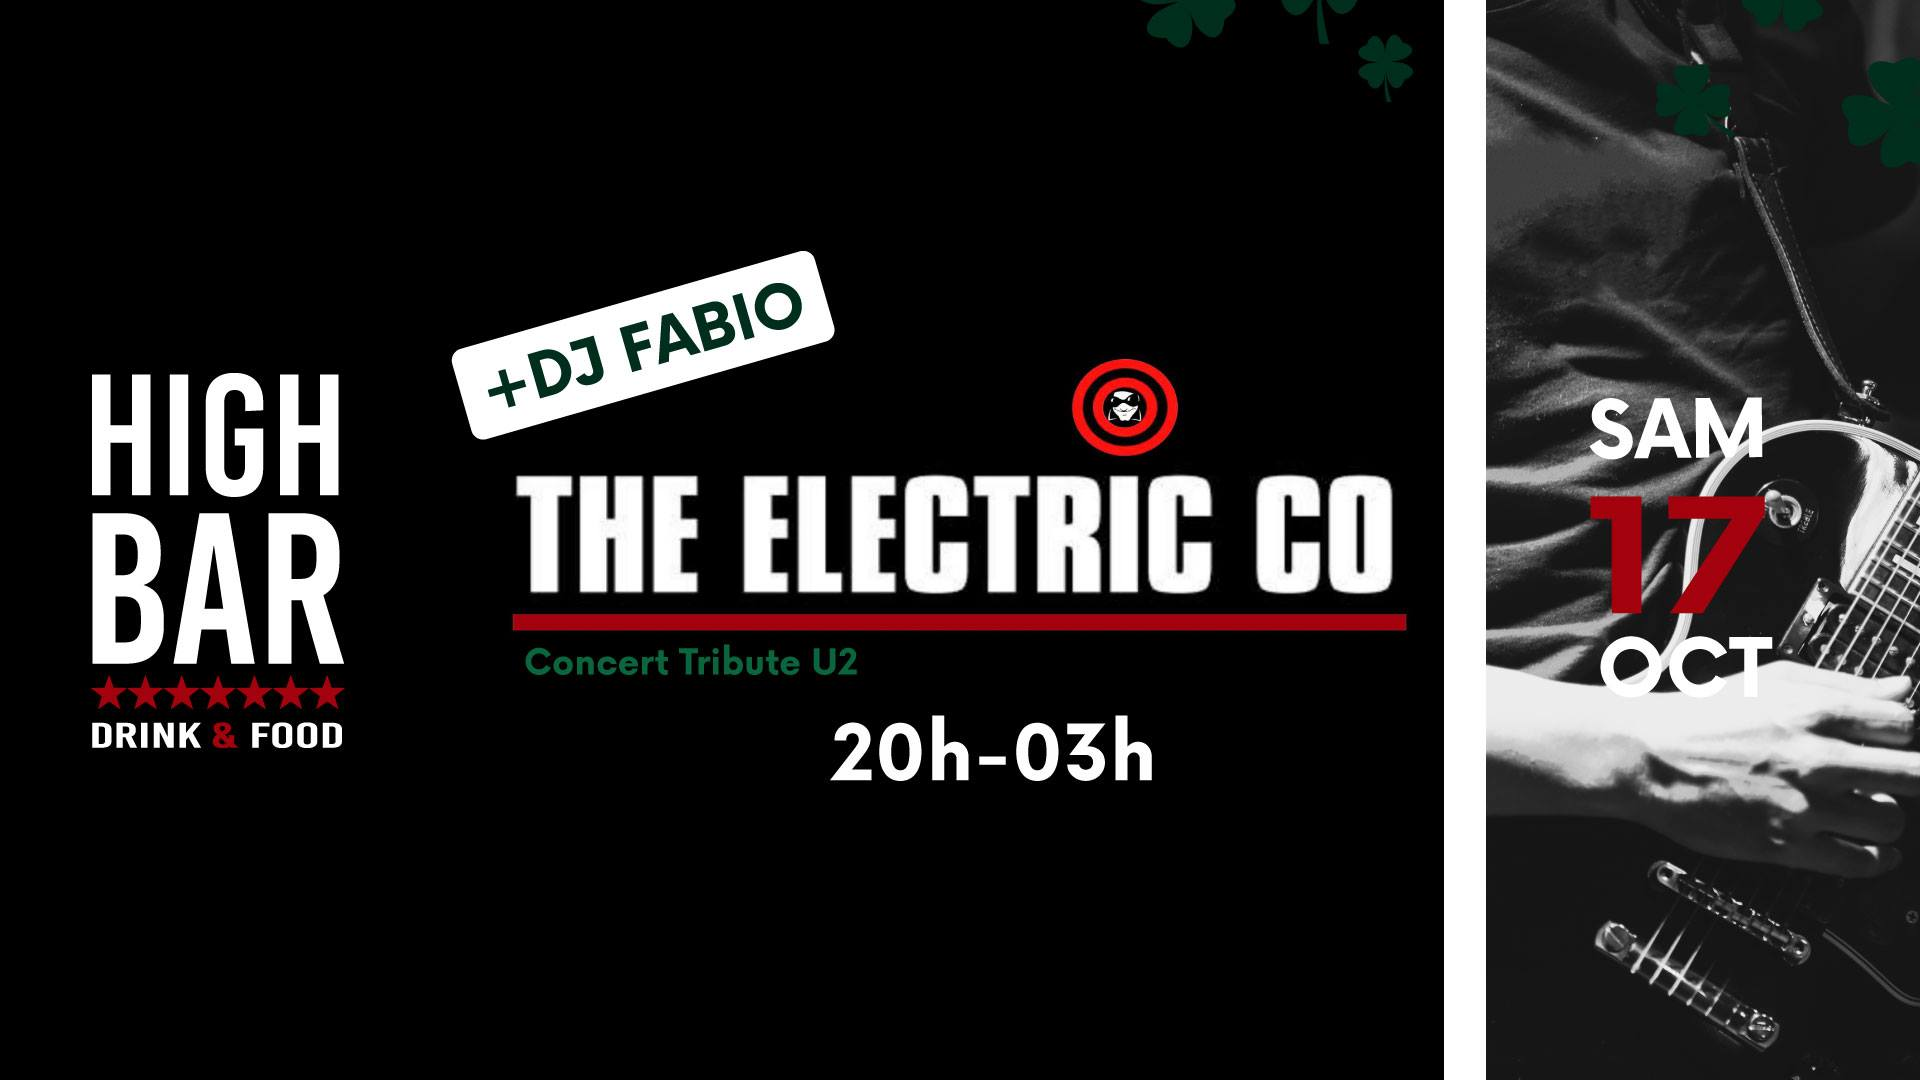 17.10: THE ELECTRICO Tribute U2 & FABIO